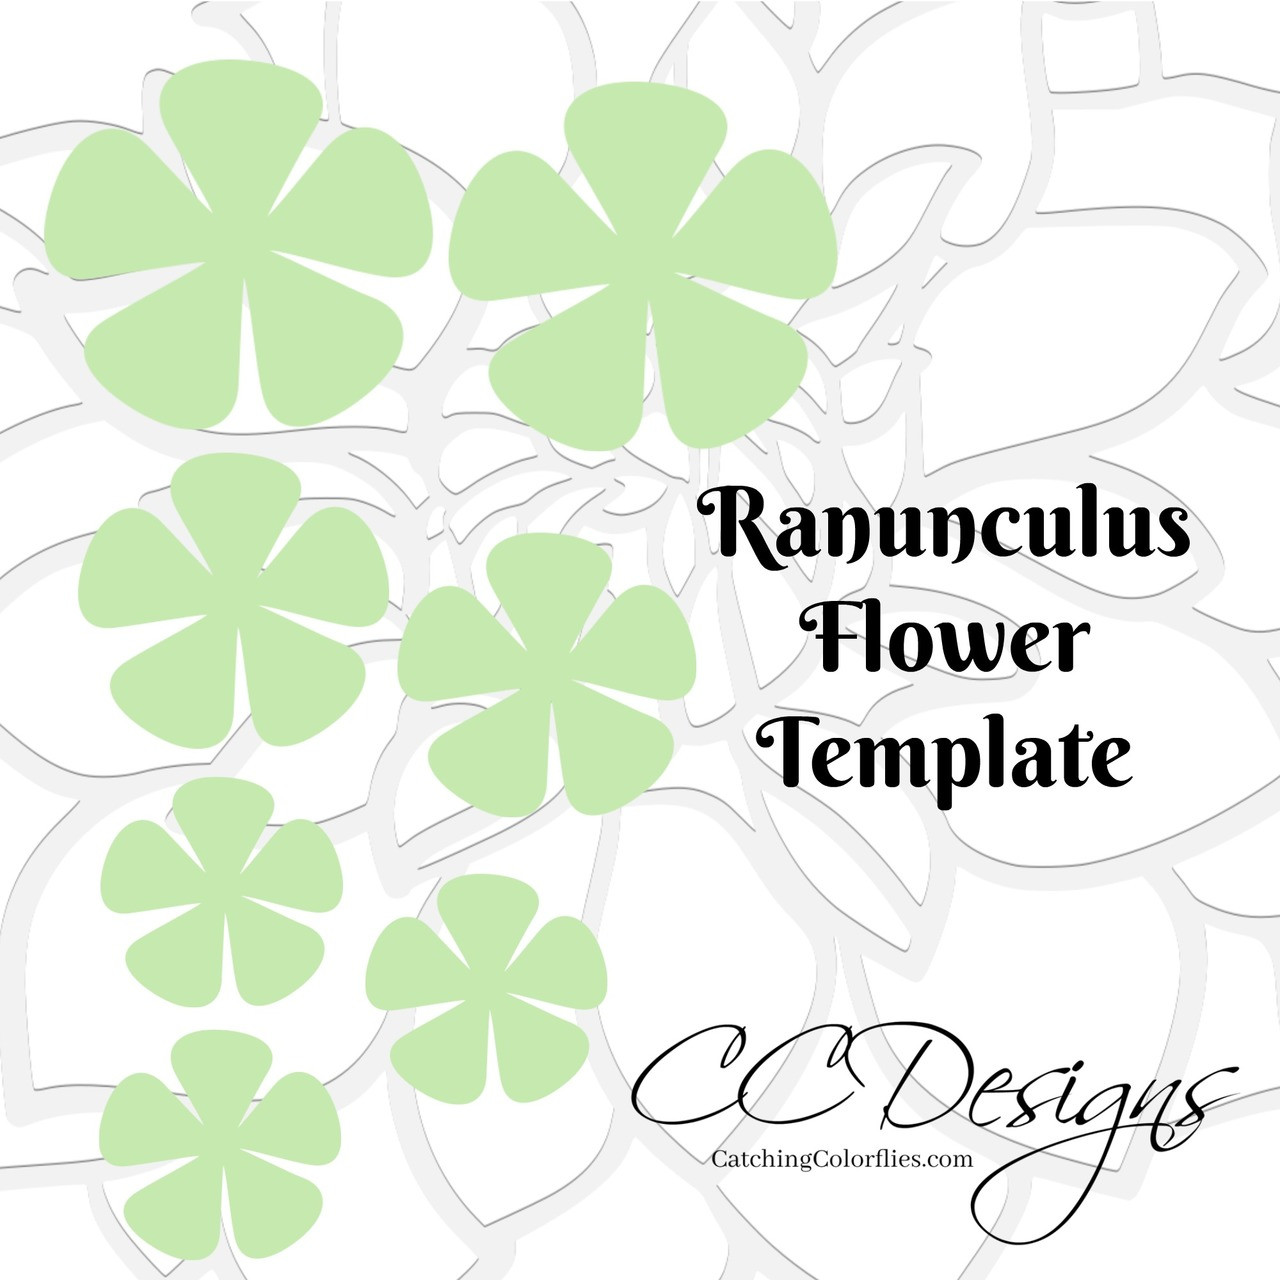 Ranunculus Paper Flower Templates Catching Colorflies